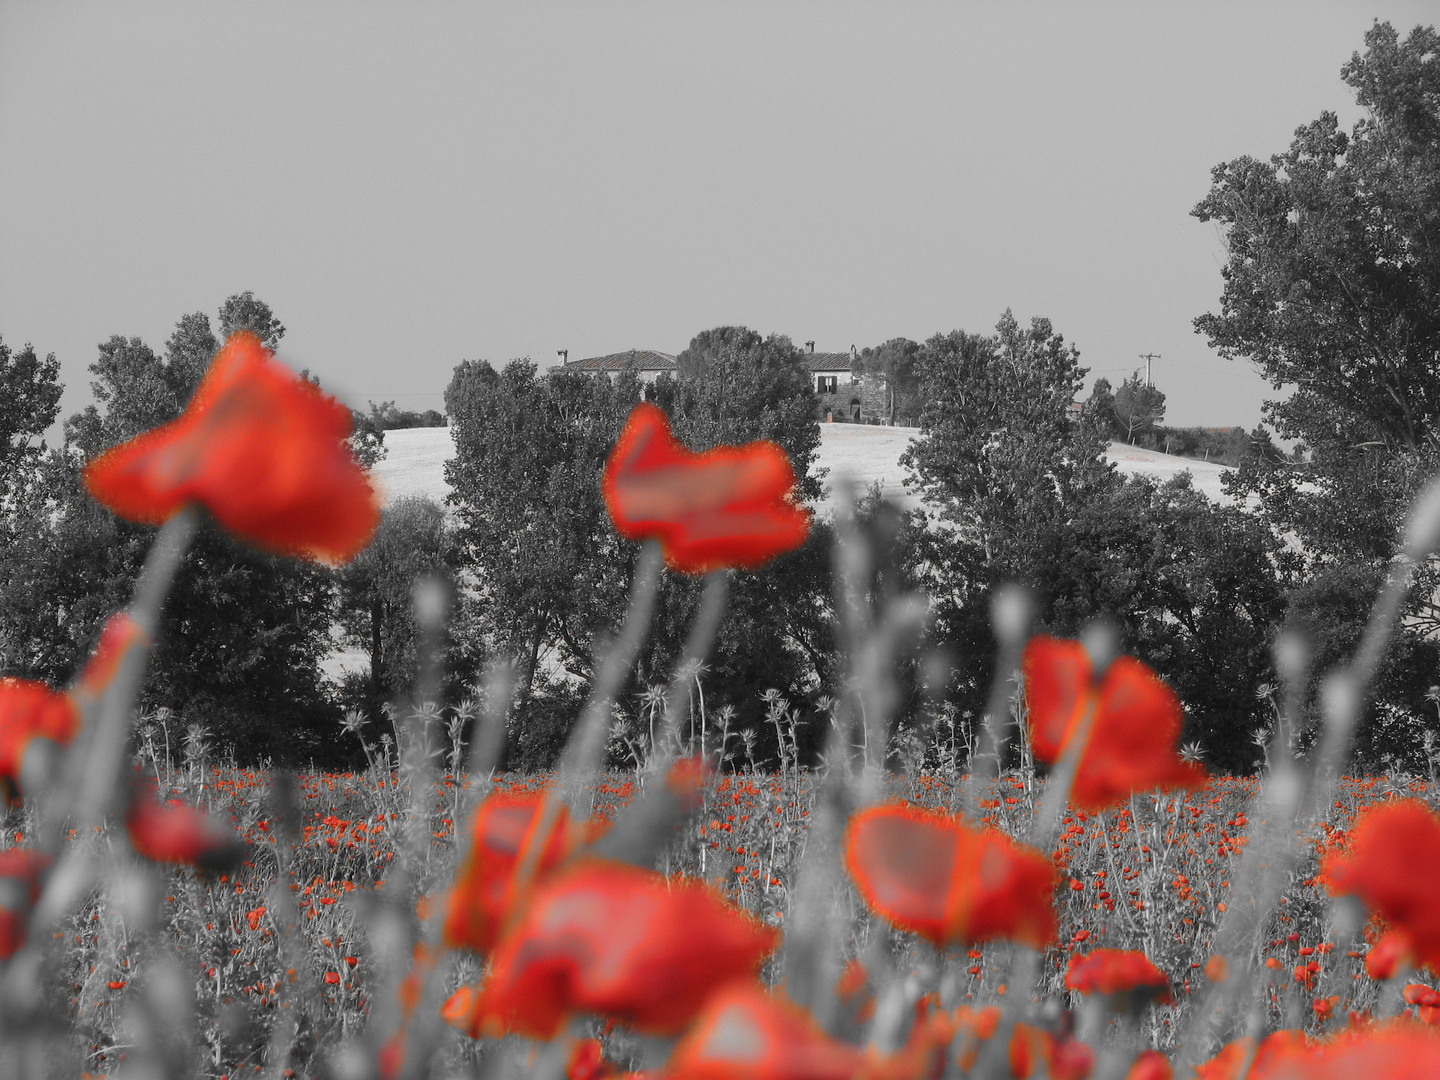 corn poppies in front of tuscany hill